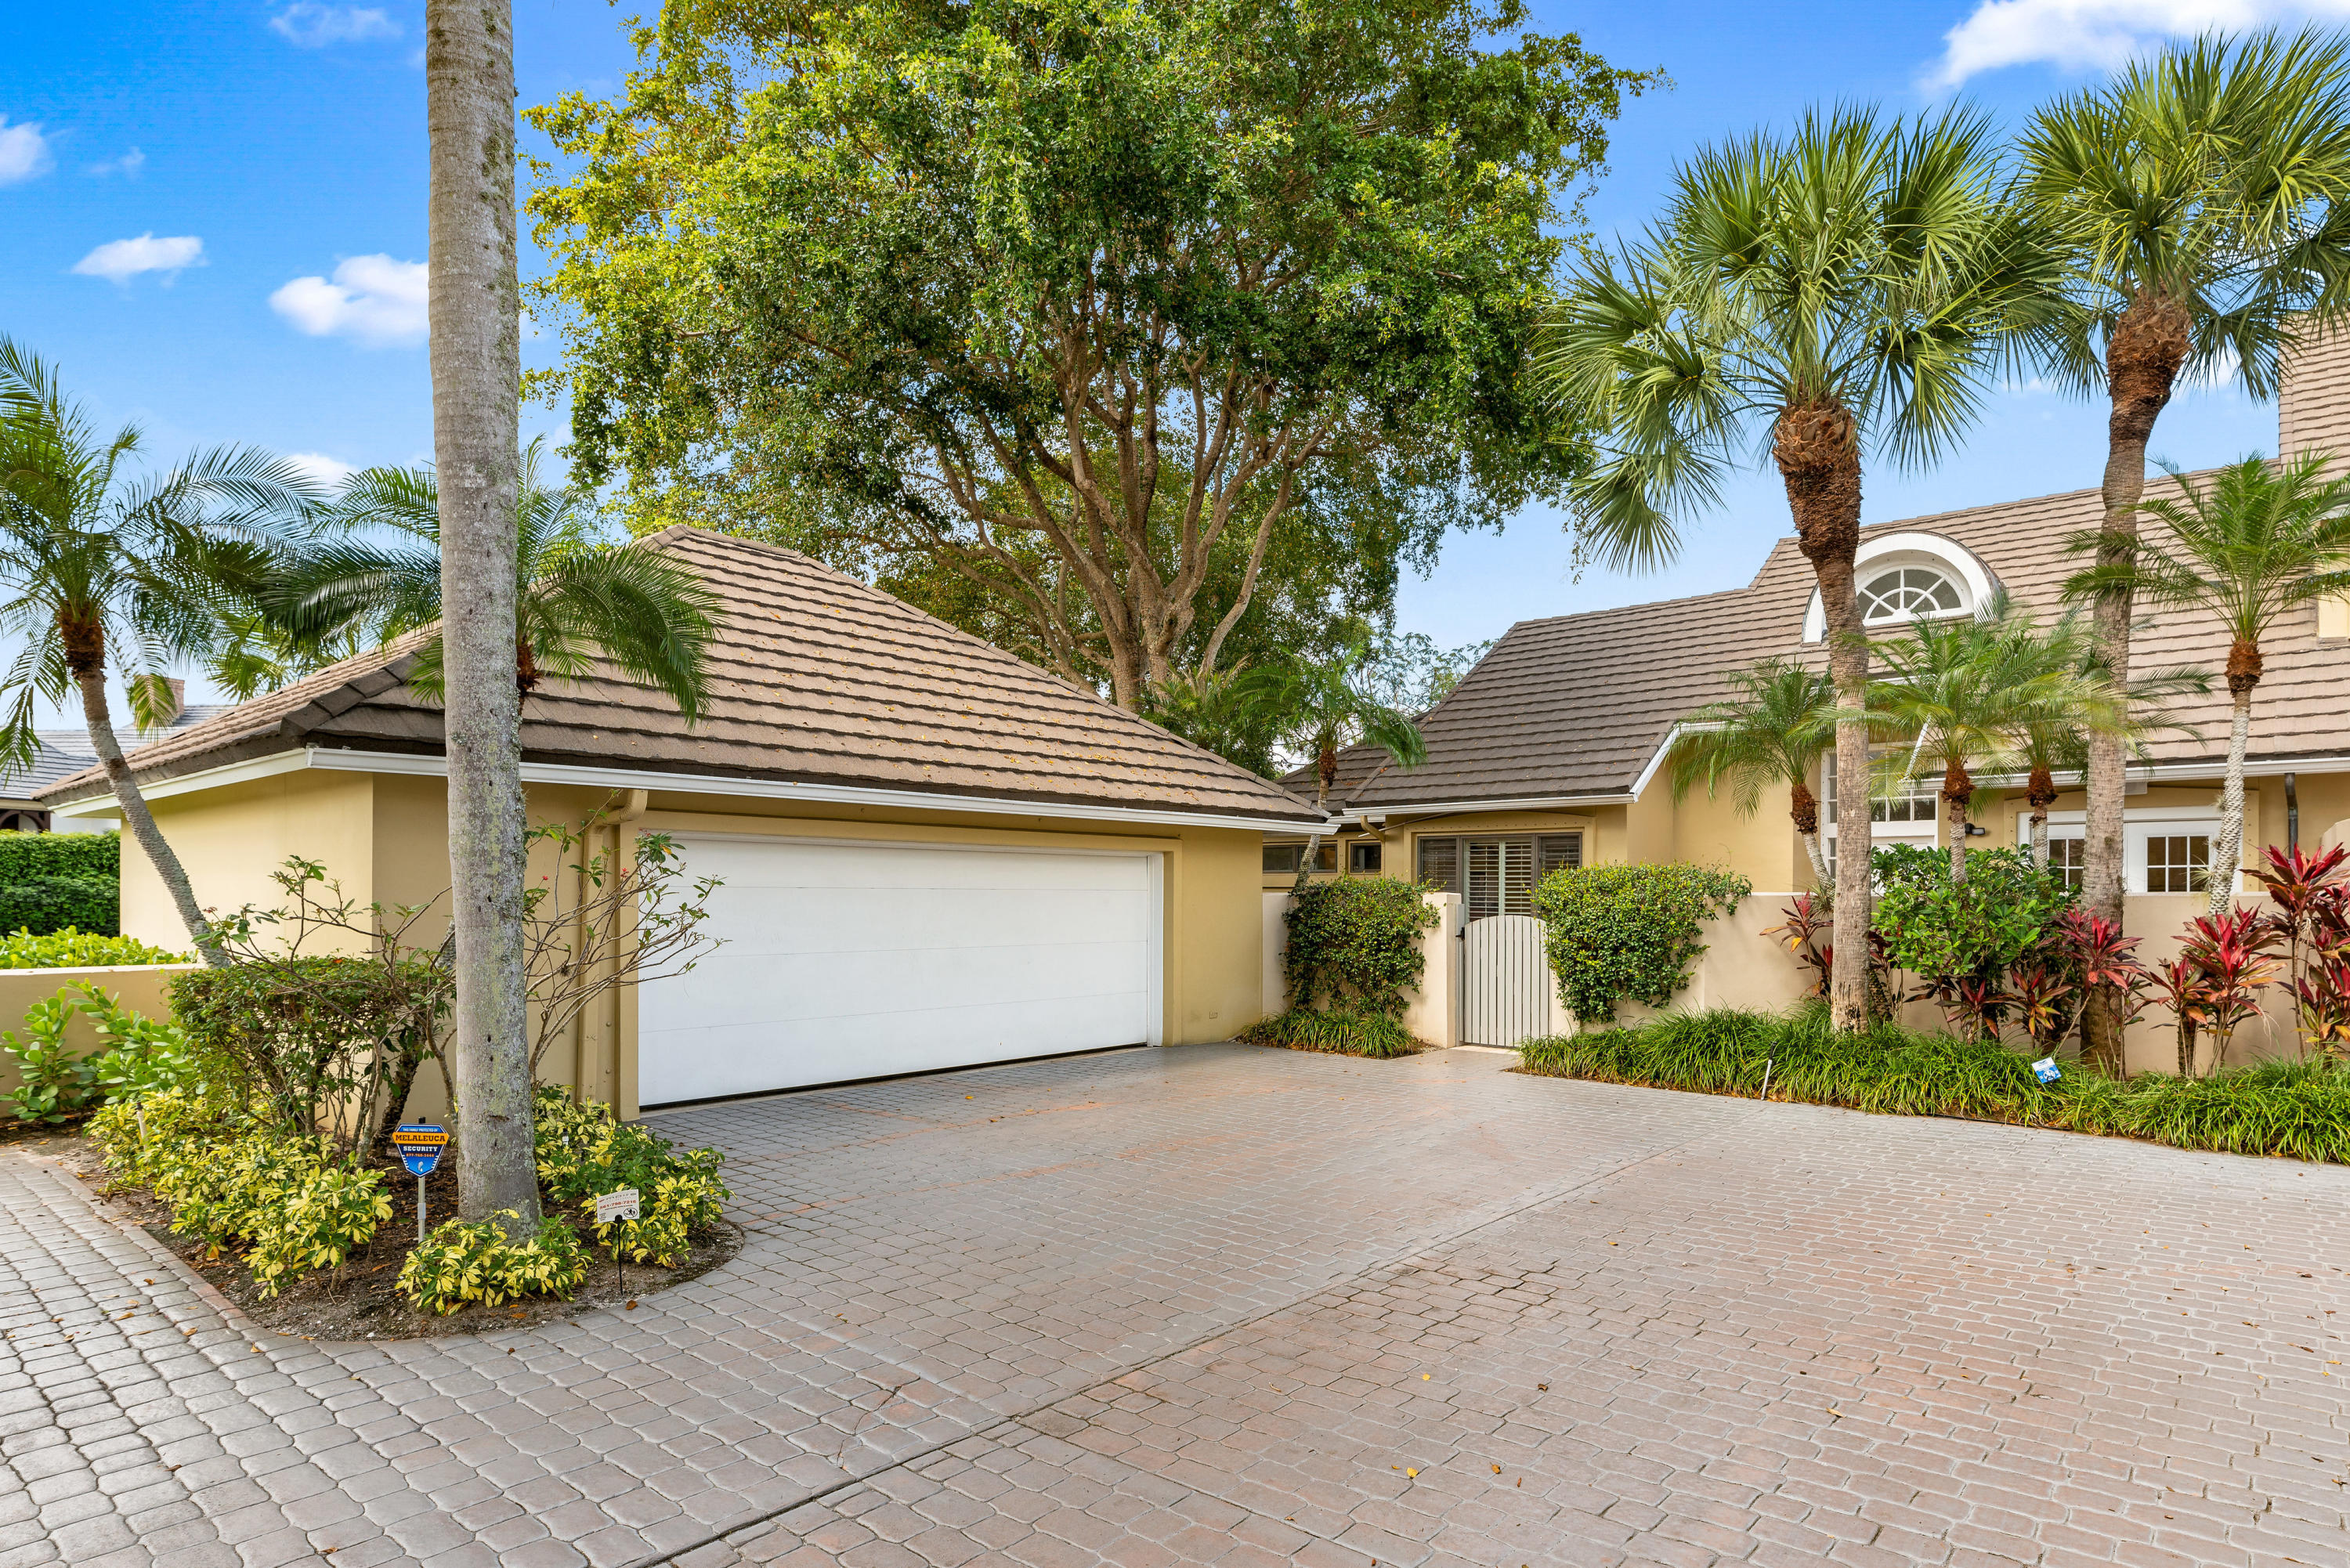 12009 Polo Club Road, Wellington, Florida 33414, 3 Bedrooms Bedrooms, ,2.1 BathroomsBathrooms,Townhouse,For Sale,PALM BEACH POLO & CC,Polo Club,RX-10510504